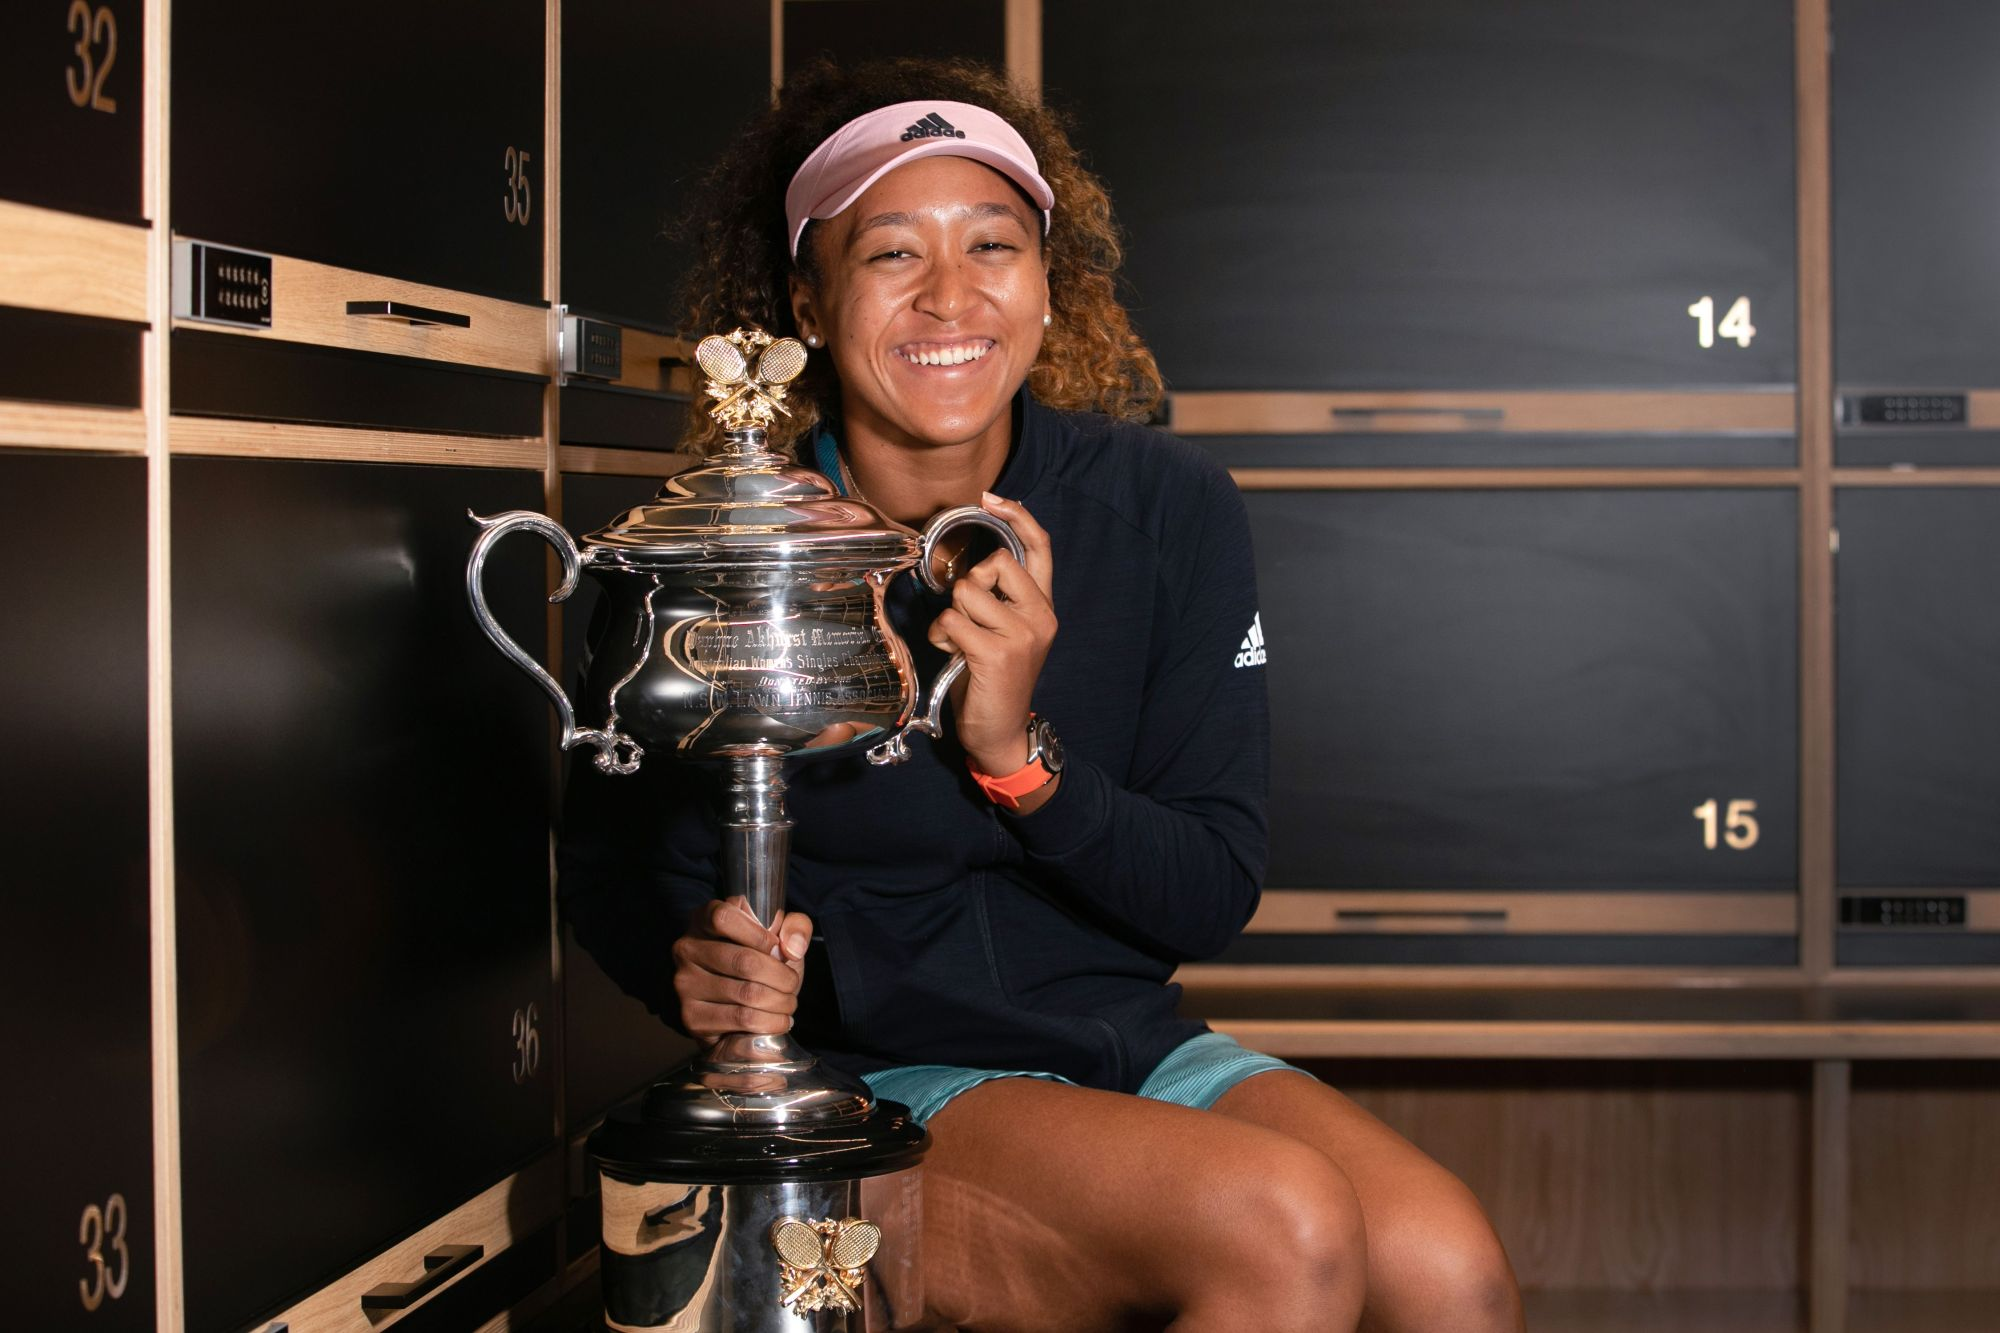 Naomi Osaka poses with the trophy after winning the Australian Open on Saturday in Melbourne, Australia. | AFP-JIJI